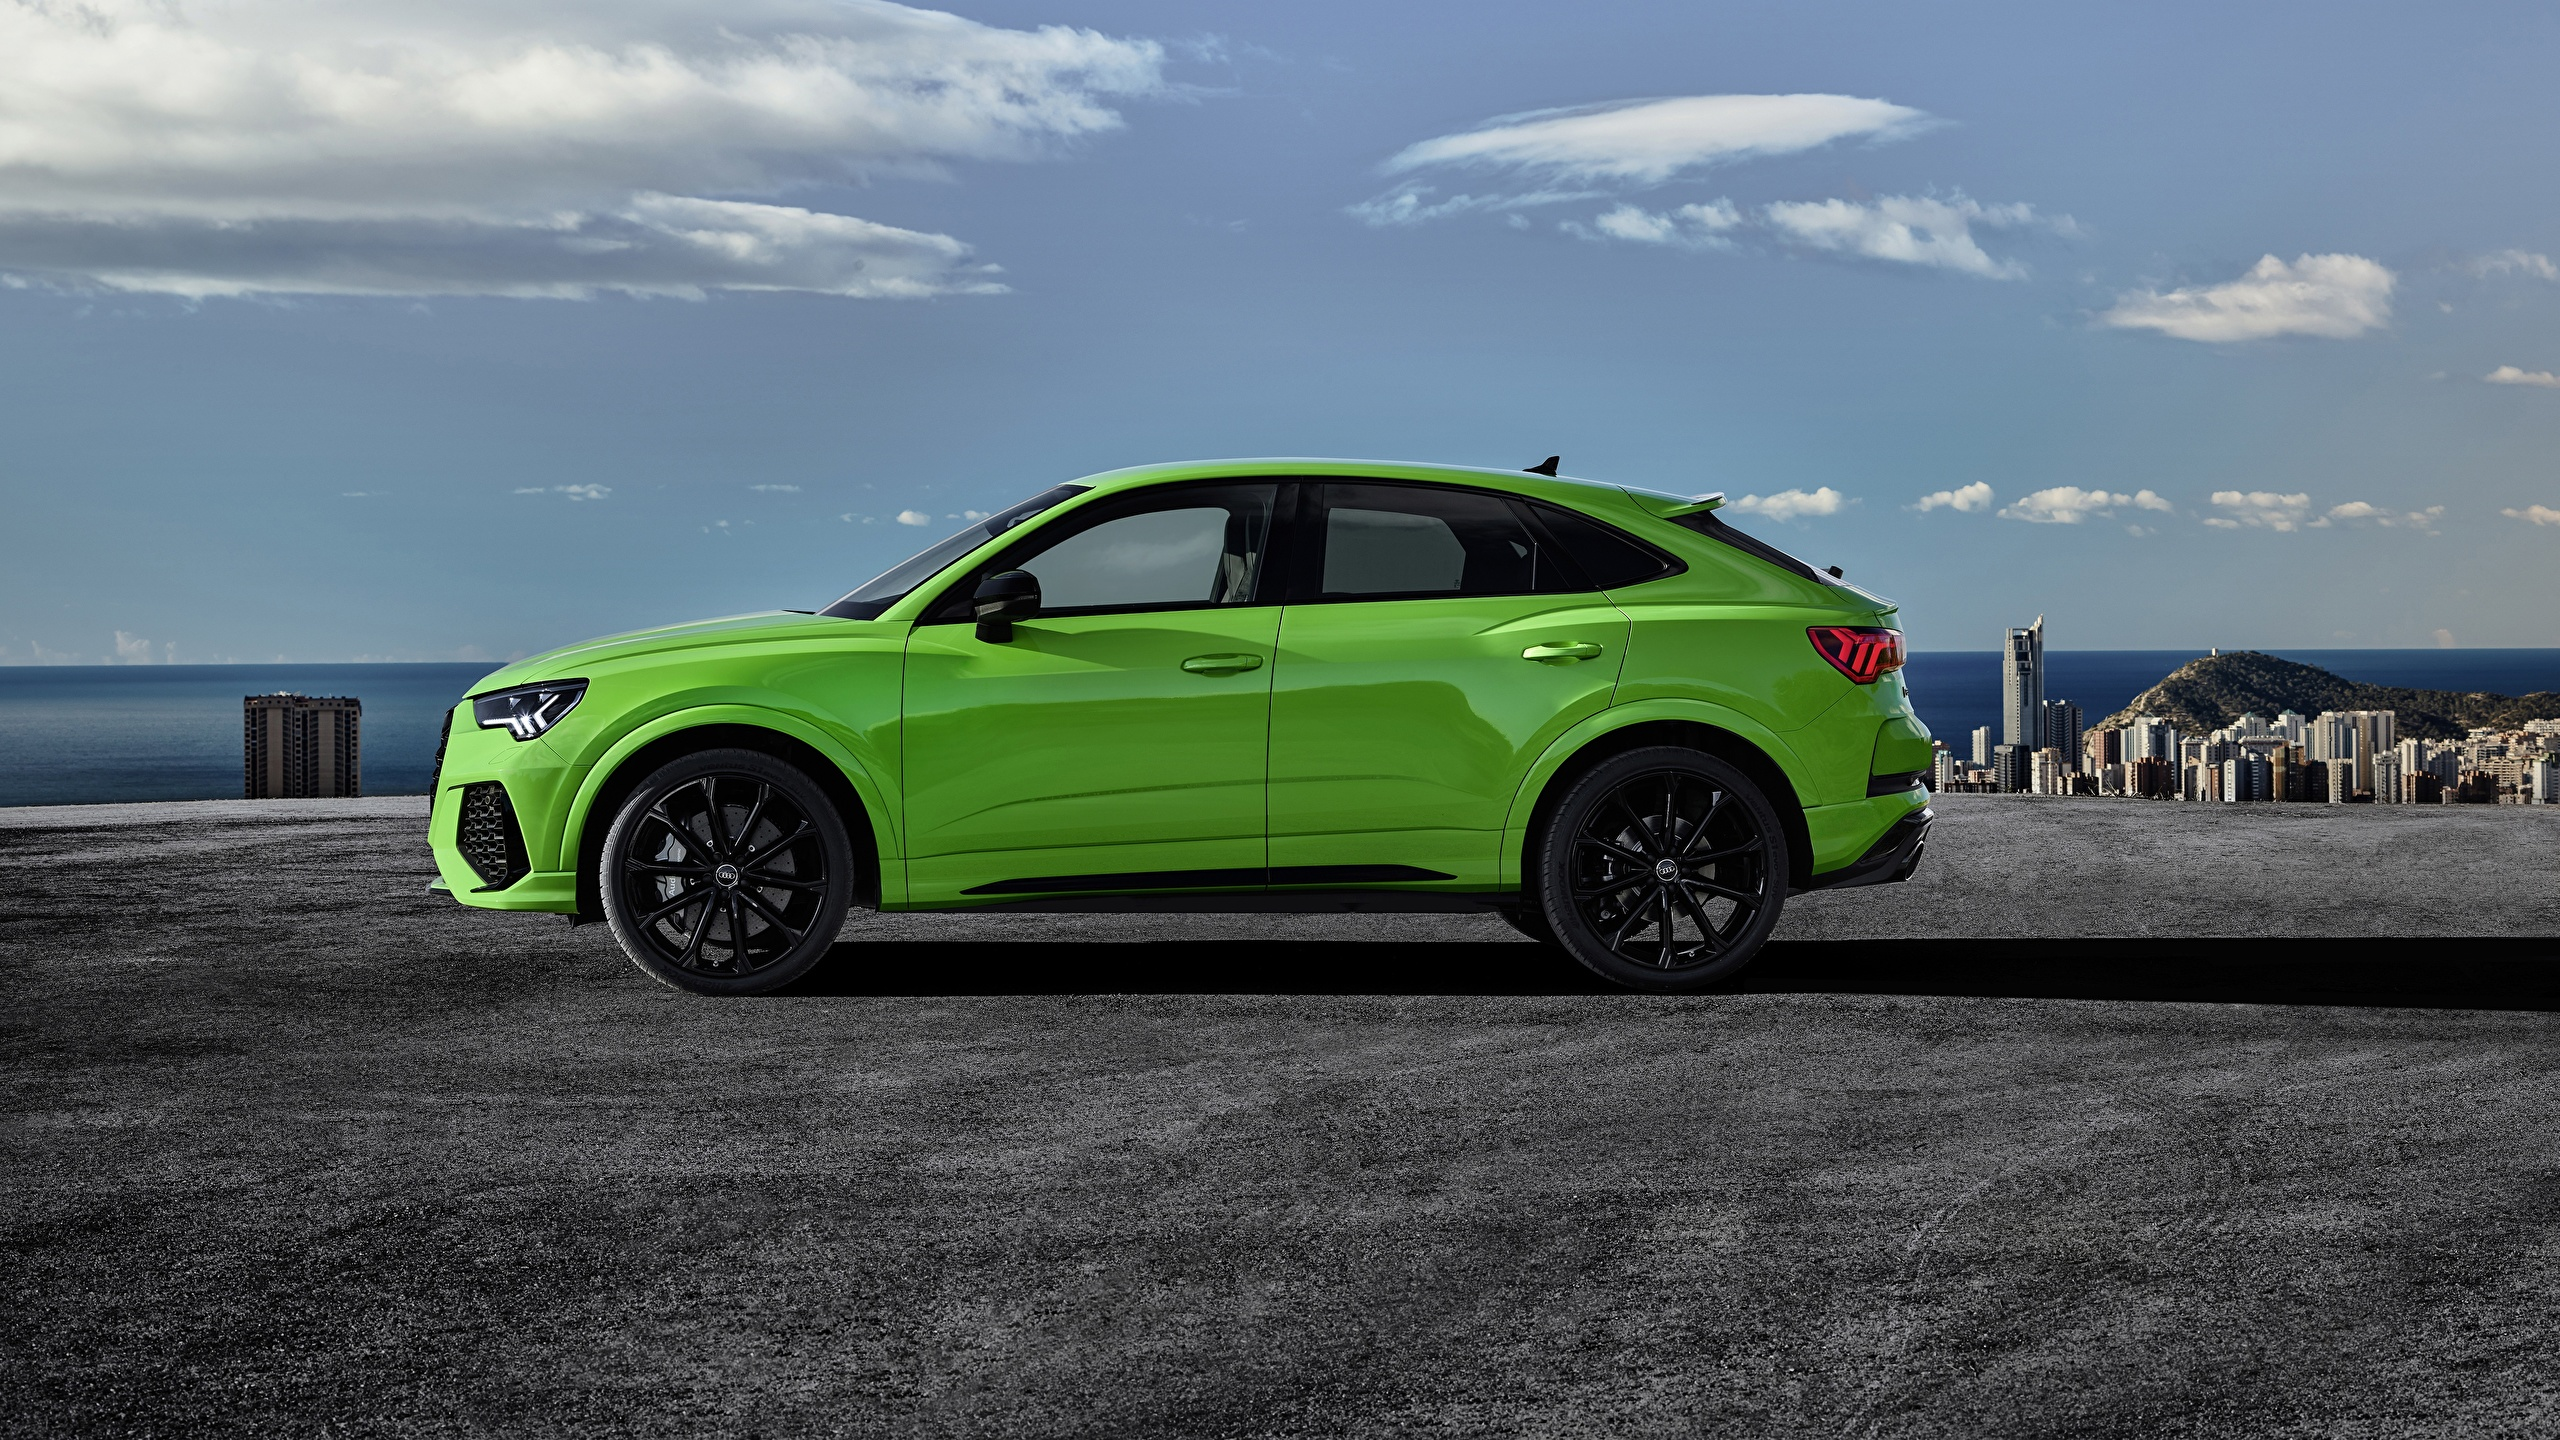 Picture Audi Cuv Sportback 2020 Rs Q3 Green Side 2560x1440